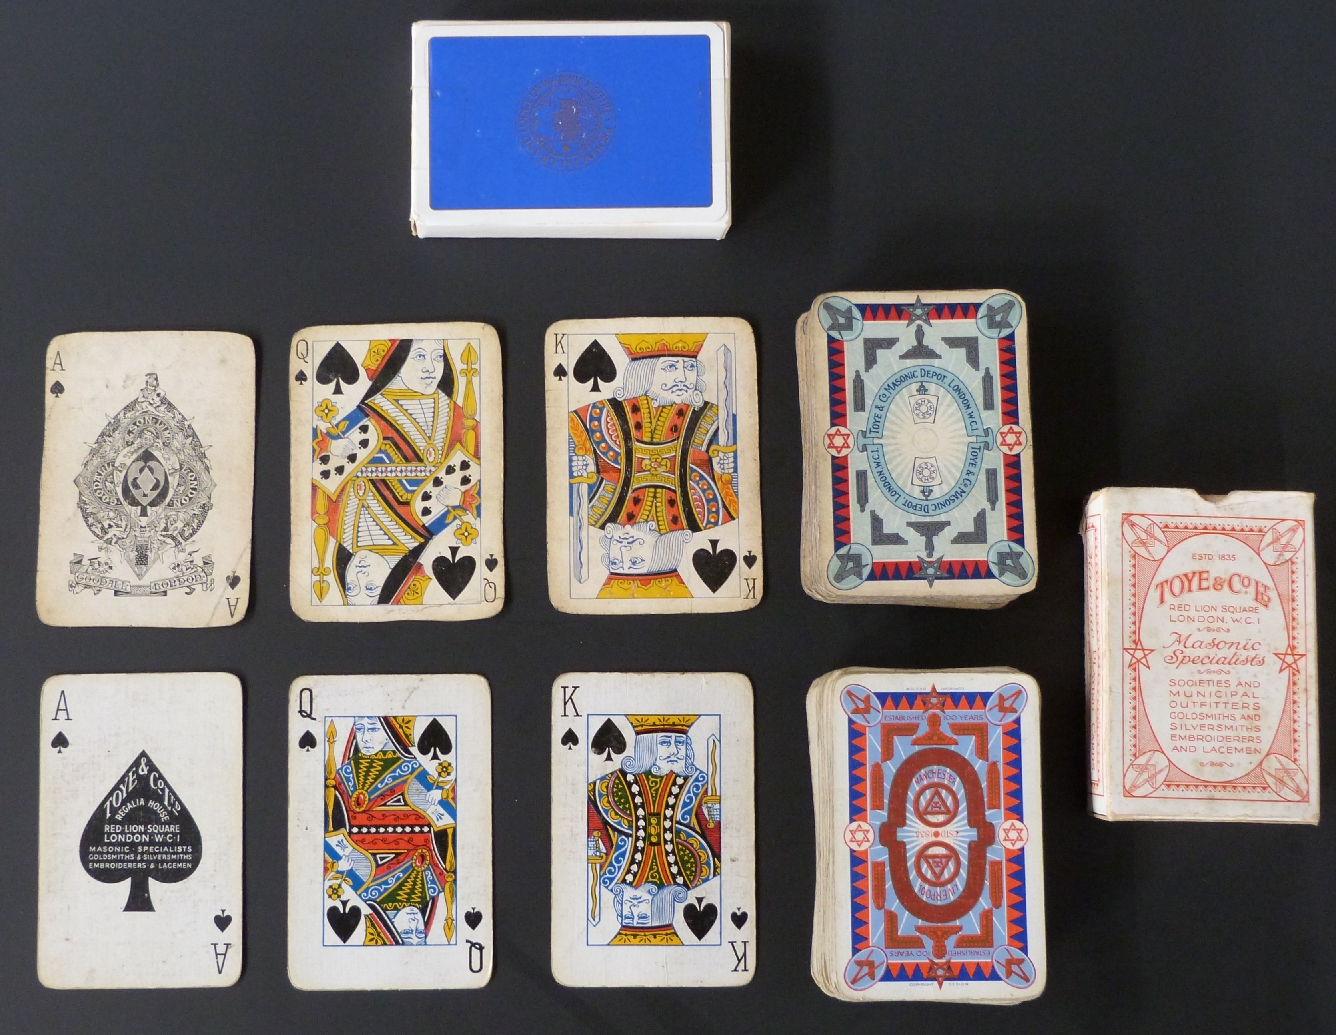 Lot 150 - Three single packs of English playing cards with Masonic back designs